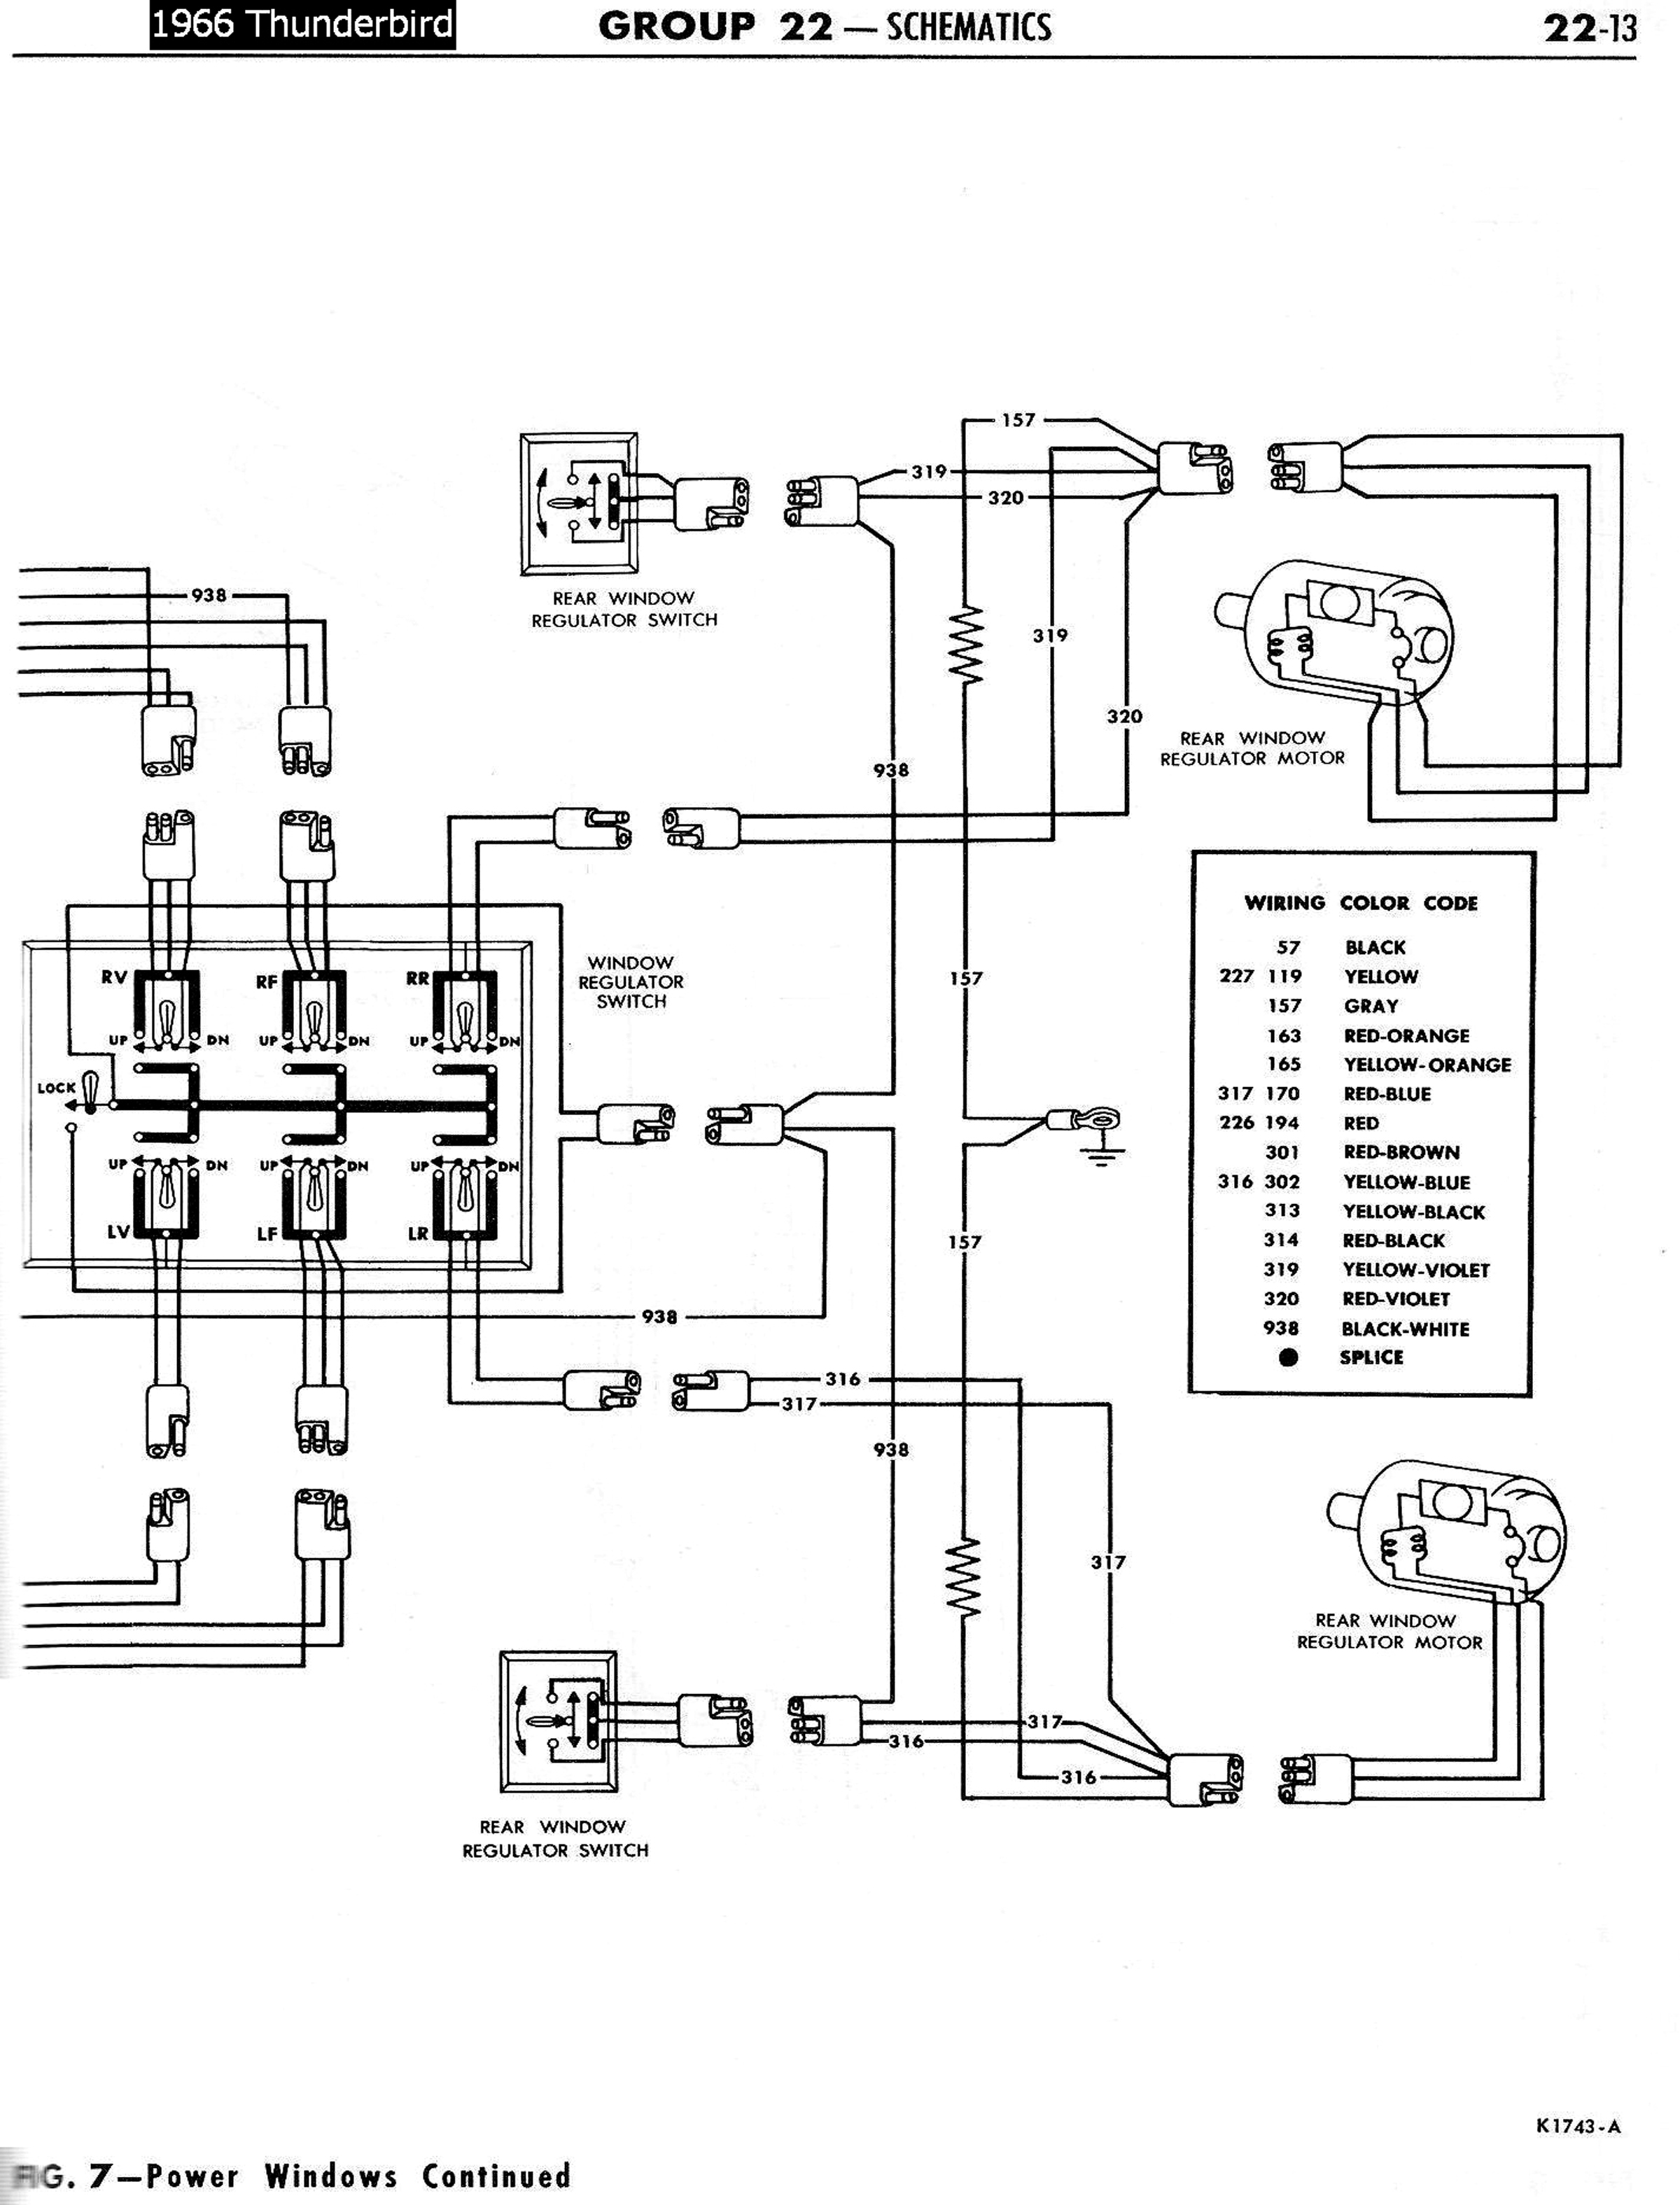 1965 Thunderbird Power Window Wiring Diagram Just Another For Falcon Ba Library Rh 70 Akszer Eu Ford Frame